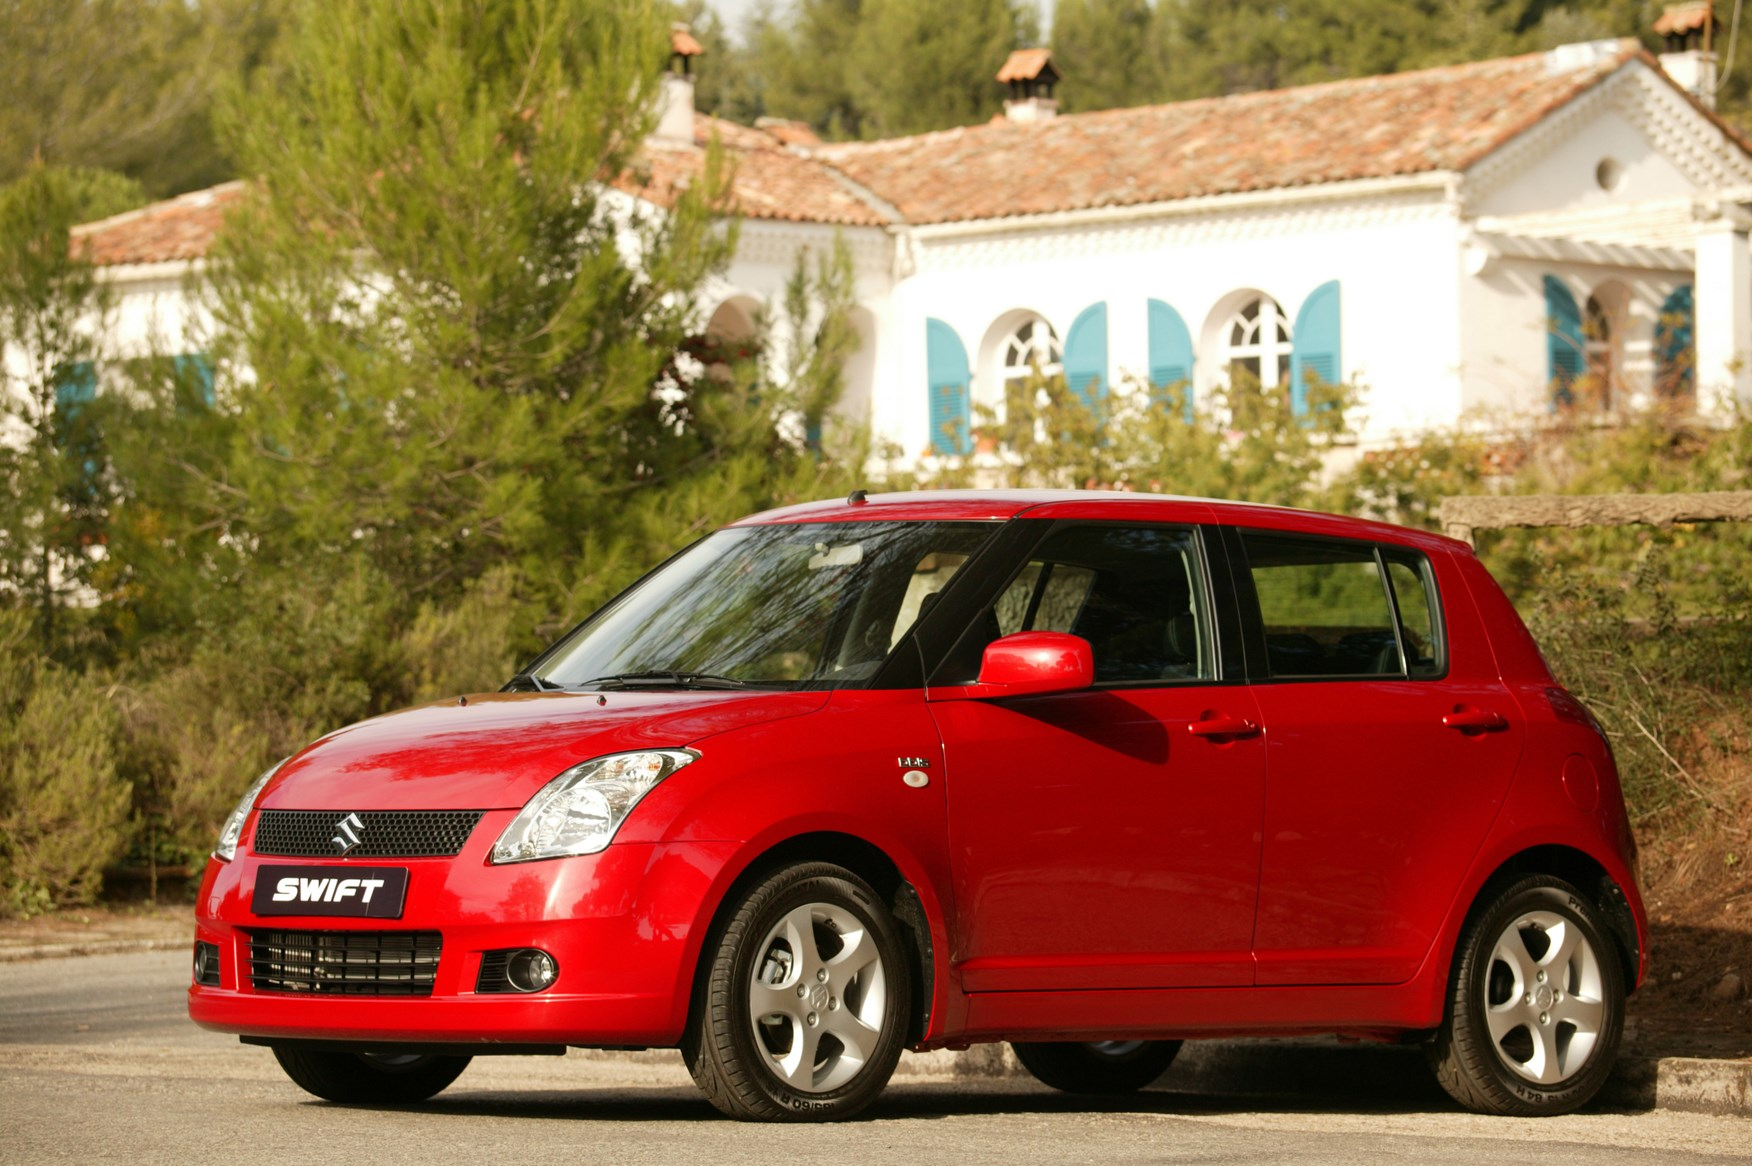 suzuki swift hatchback 2005 2011 photos parkers. Black Bedroom Furniture Sets. Home Design Ideas